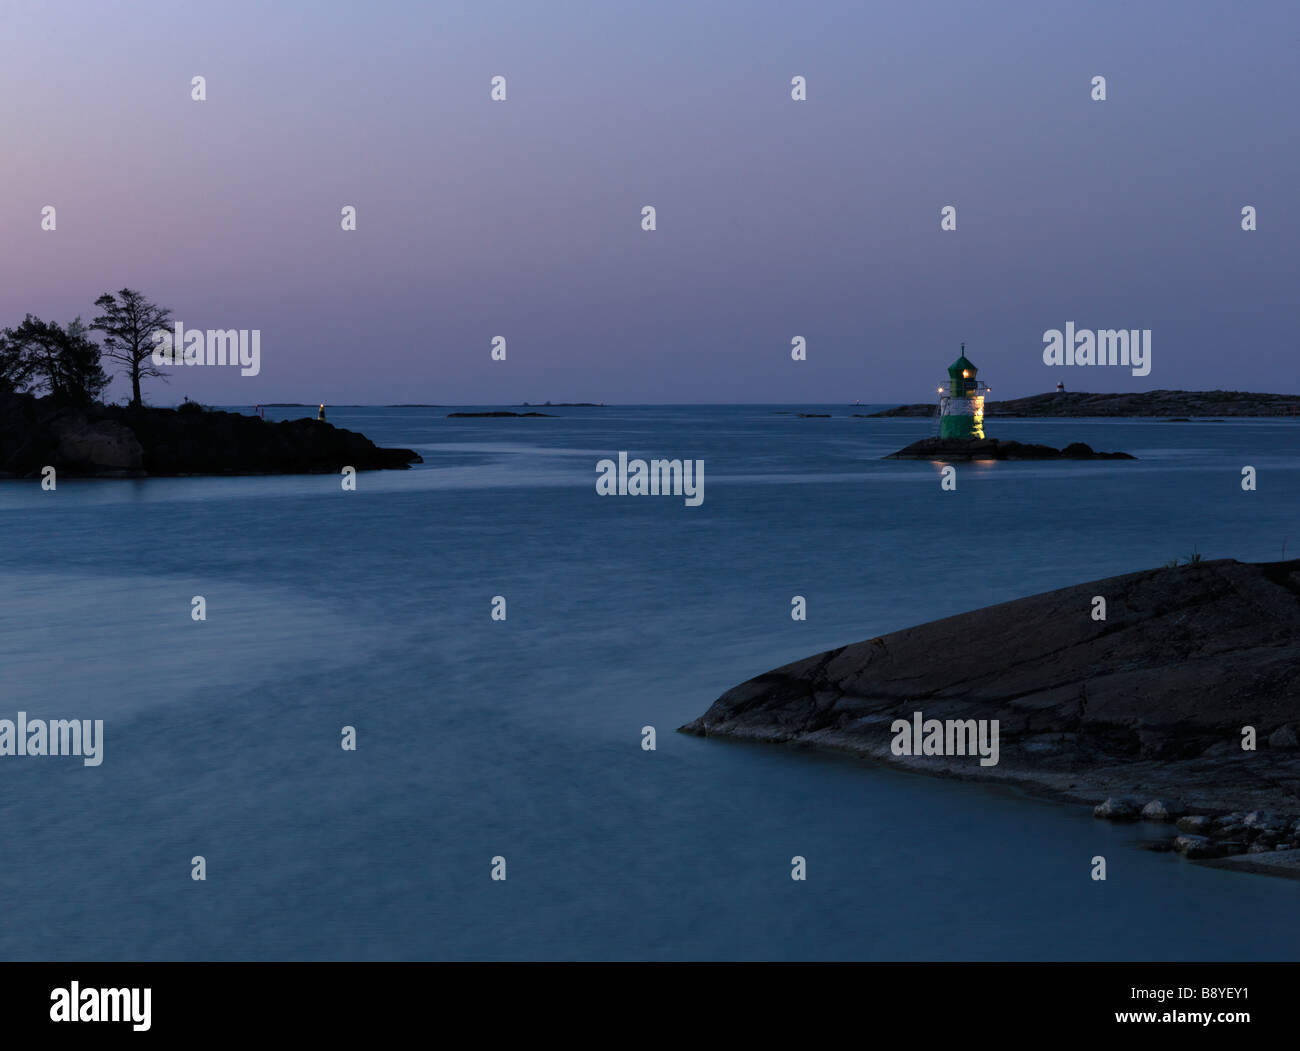 A lighthouse in the sea Sweden. - Stock Image